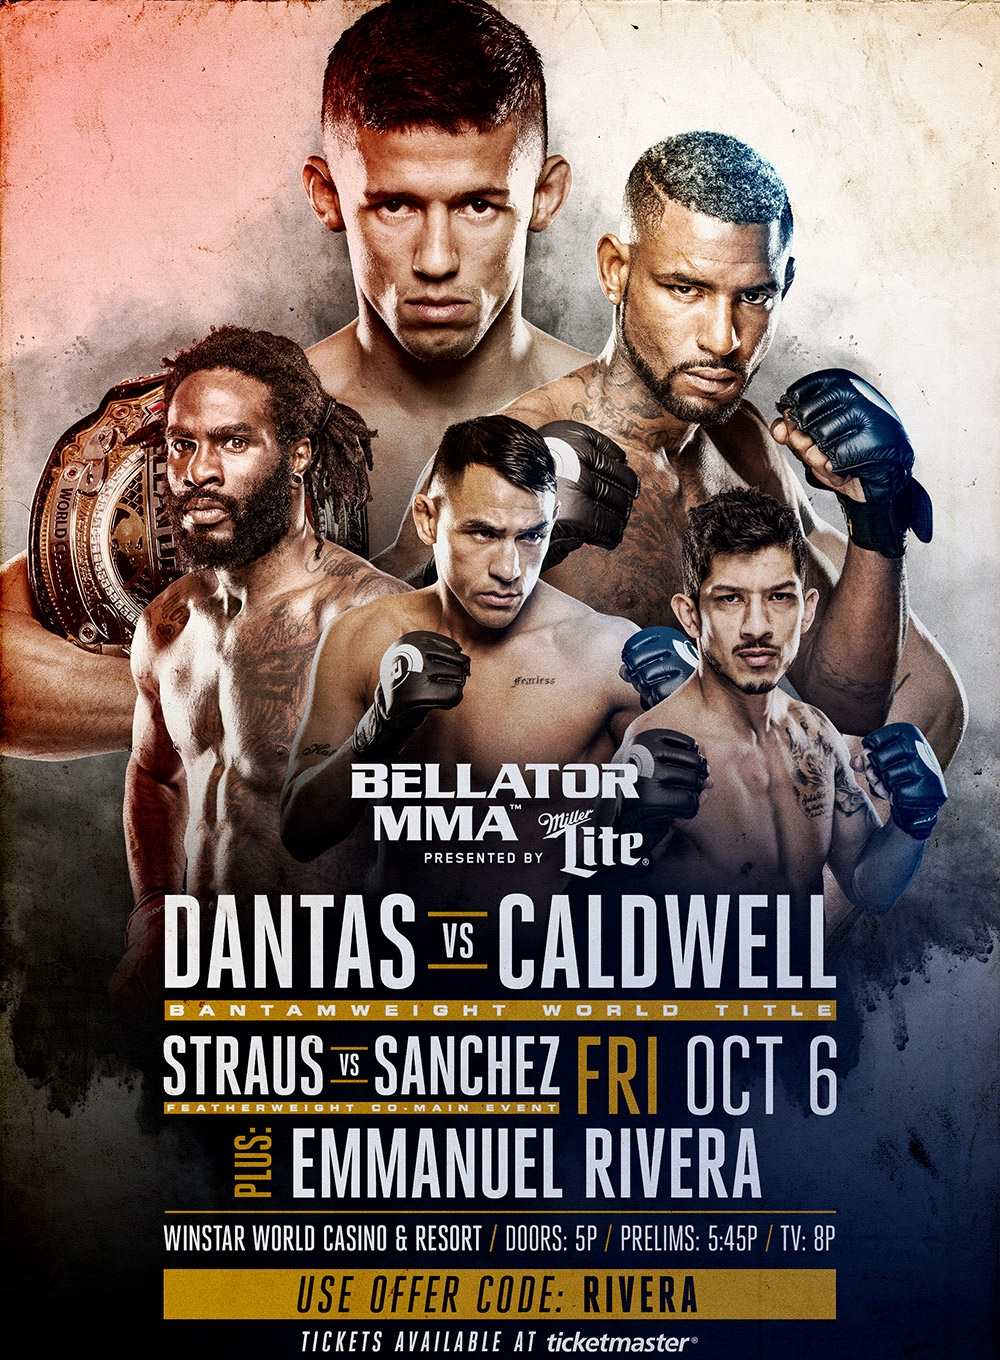 BELLATOR MMA 184 - TKO COMBAT SPORTS - OCTOBER 6, 2017  WINSTAR, OK